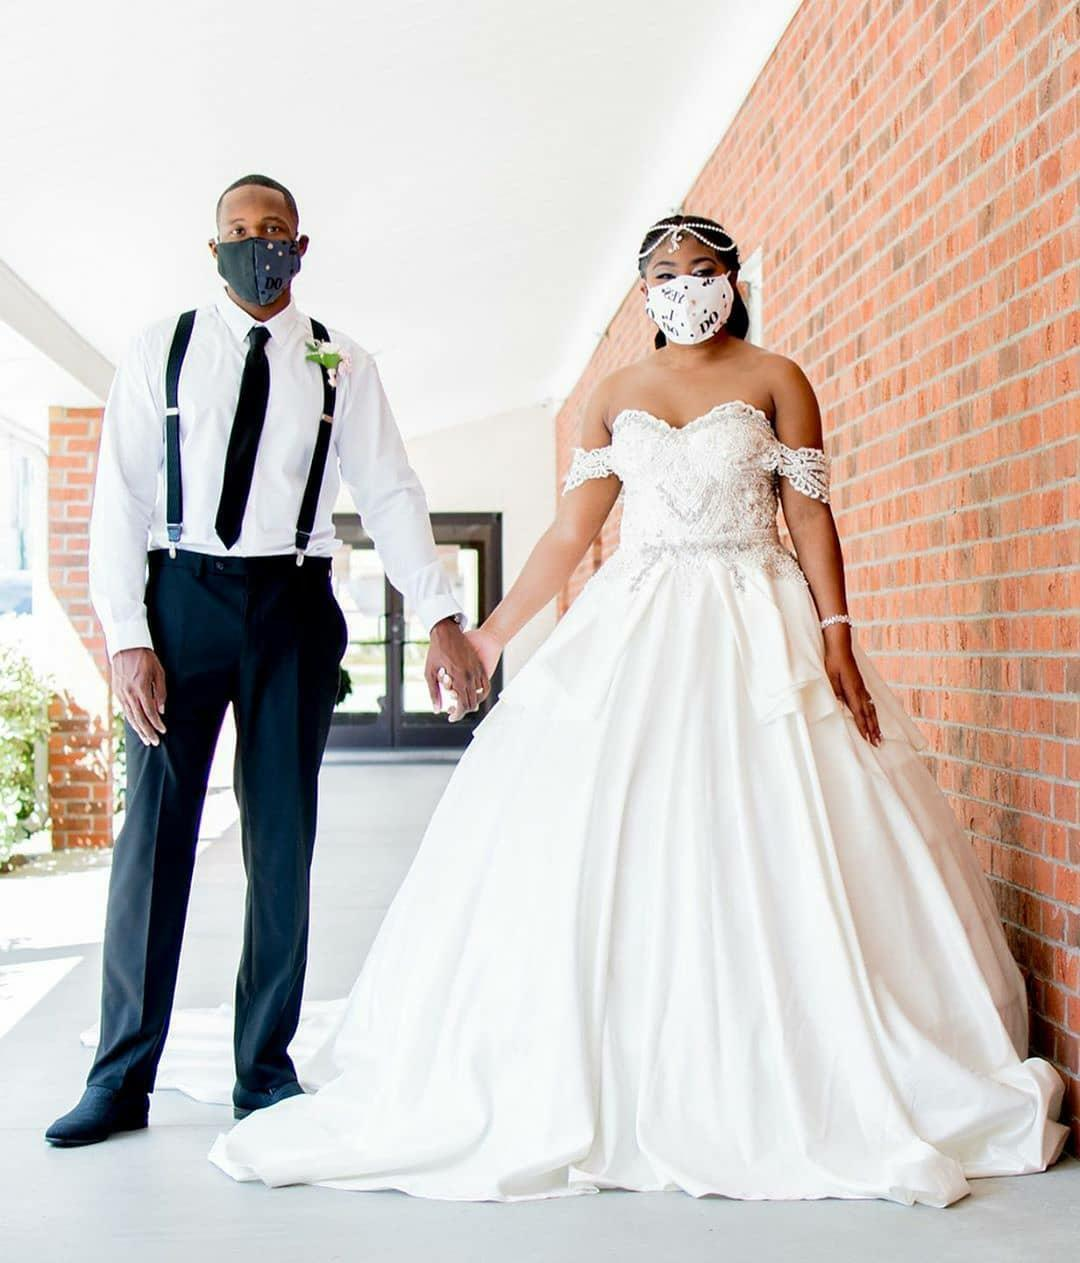 5 Tips On Wedding Planning During COVID-19 Pandemic